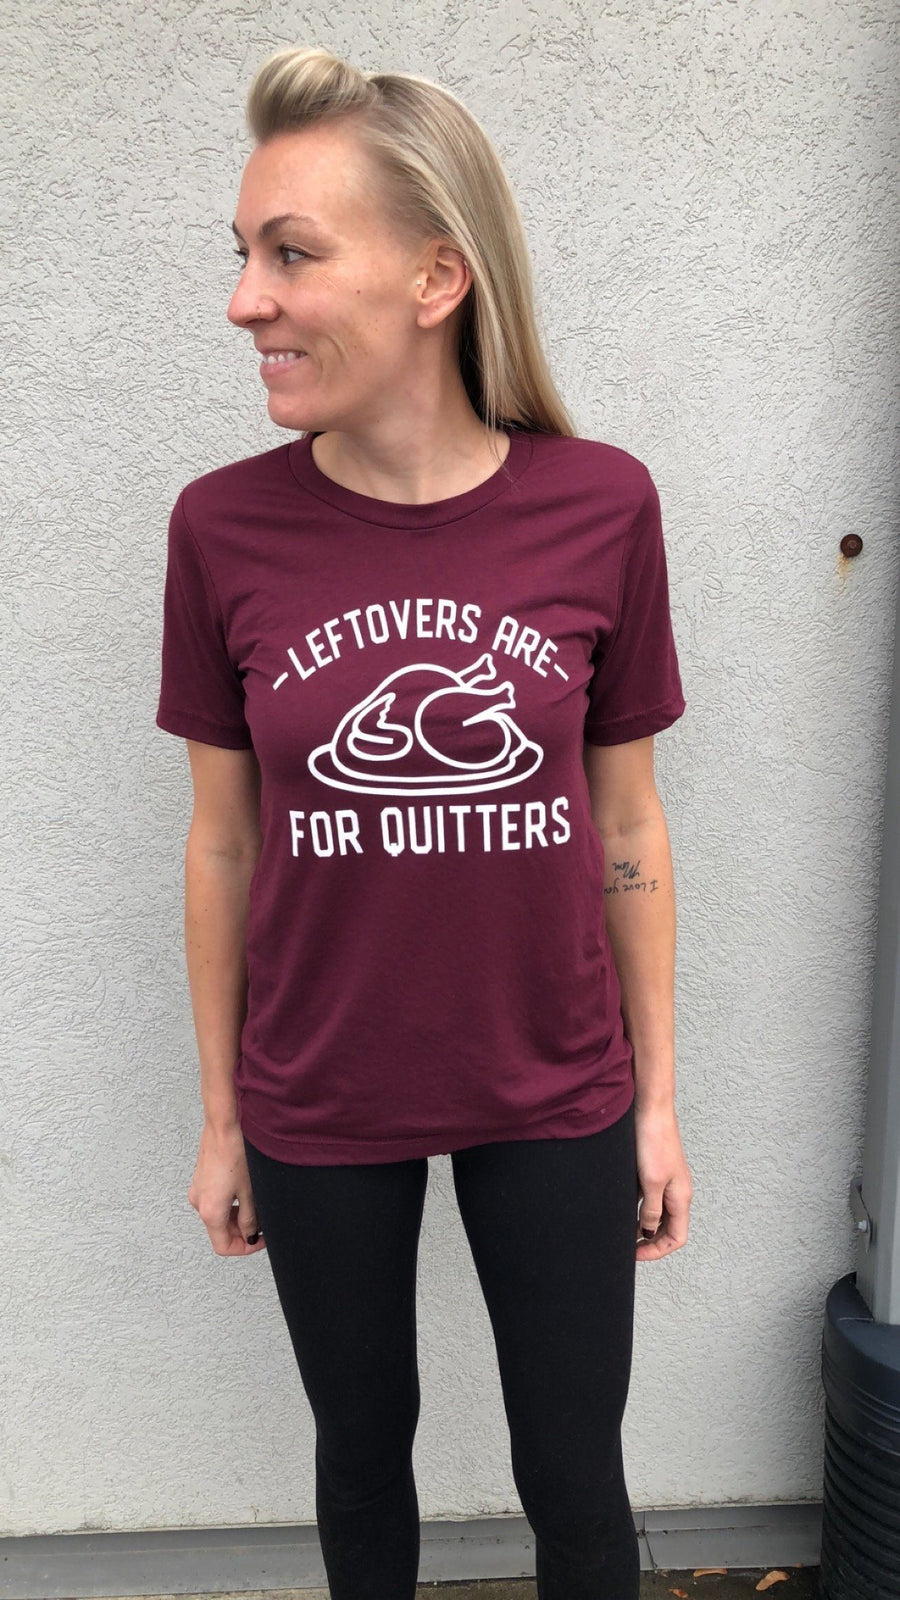 leftovers are for quitters shirt by icecreaMNlove - icecreaMNlove